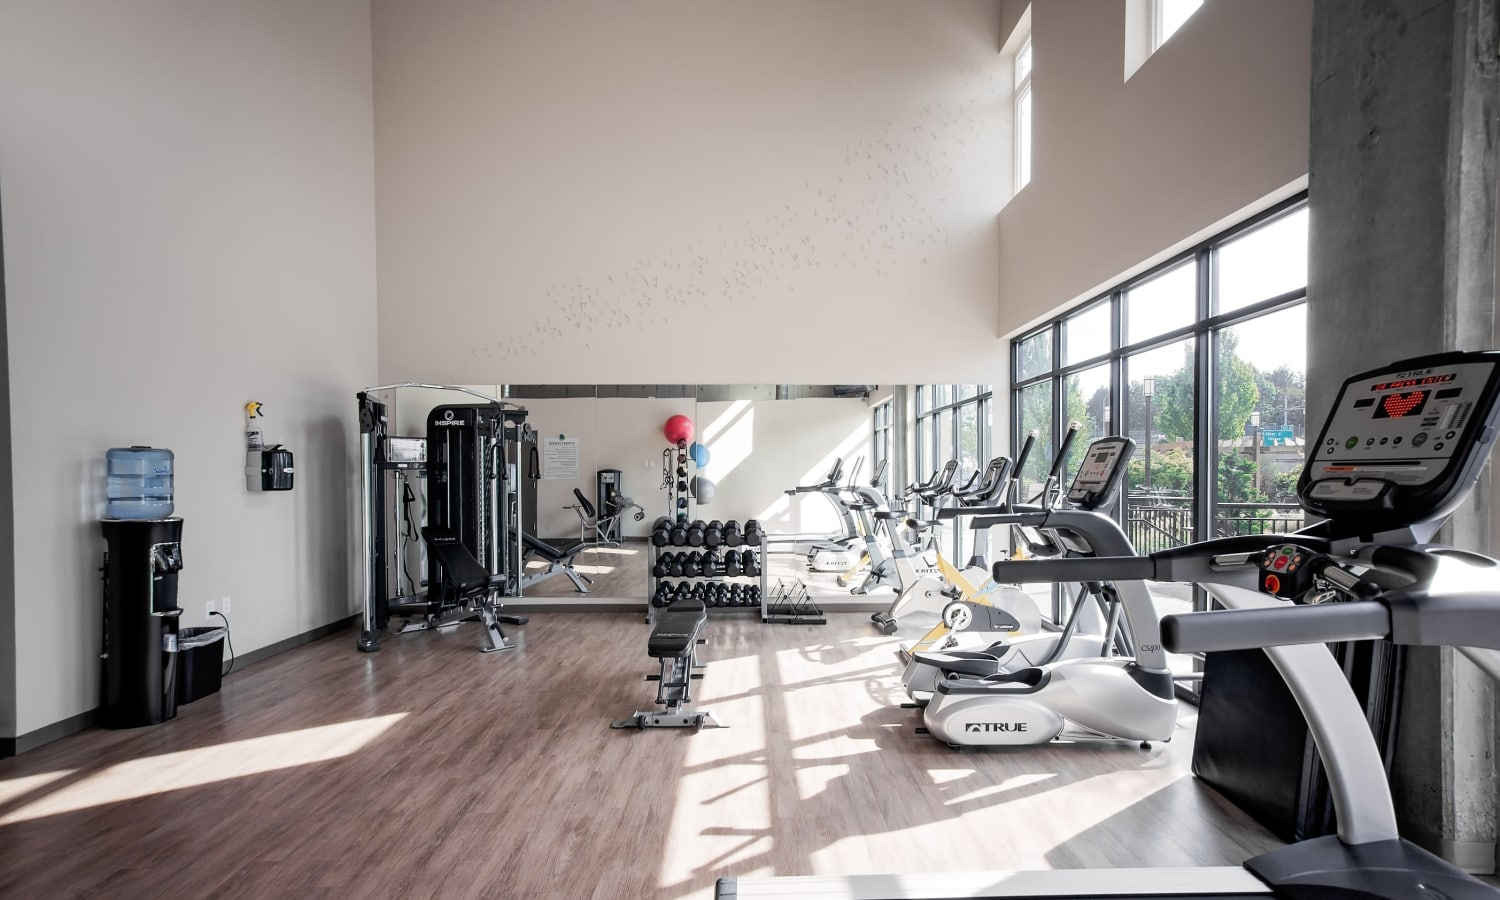 On-site, fully equipped fitness center at Grant Park Village in Portland, OR